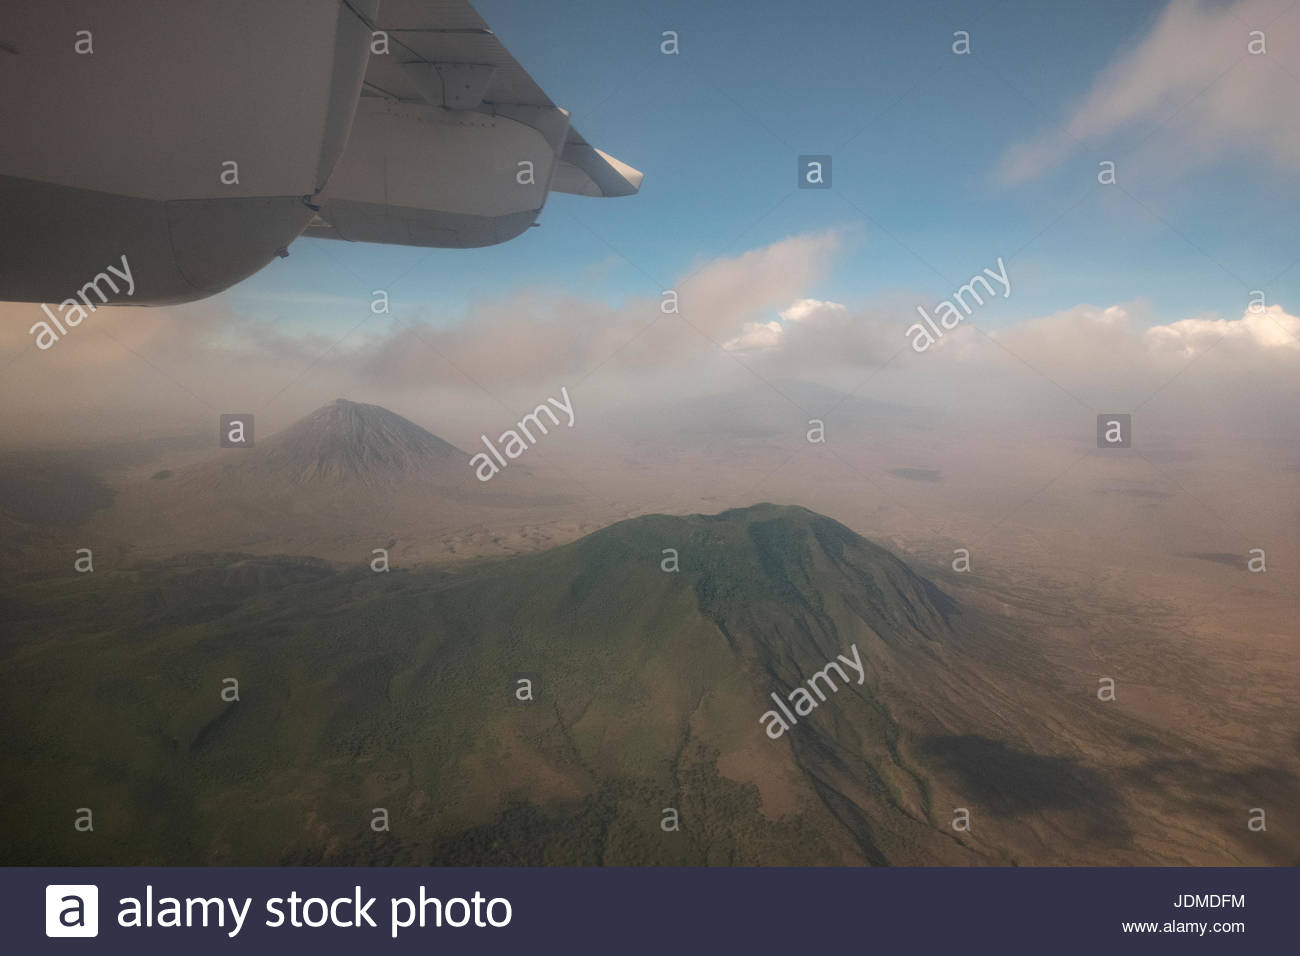 A jet in flight above the volcanoes of Tanzania. - Stock Image